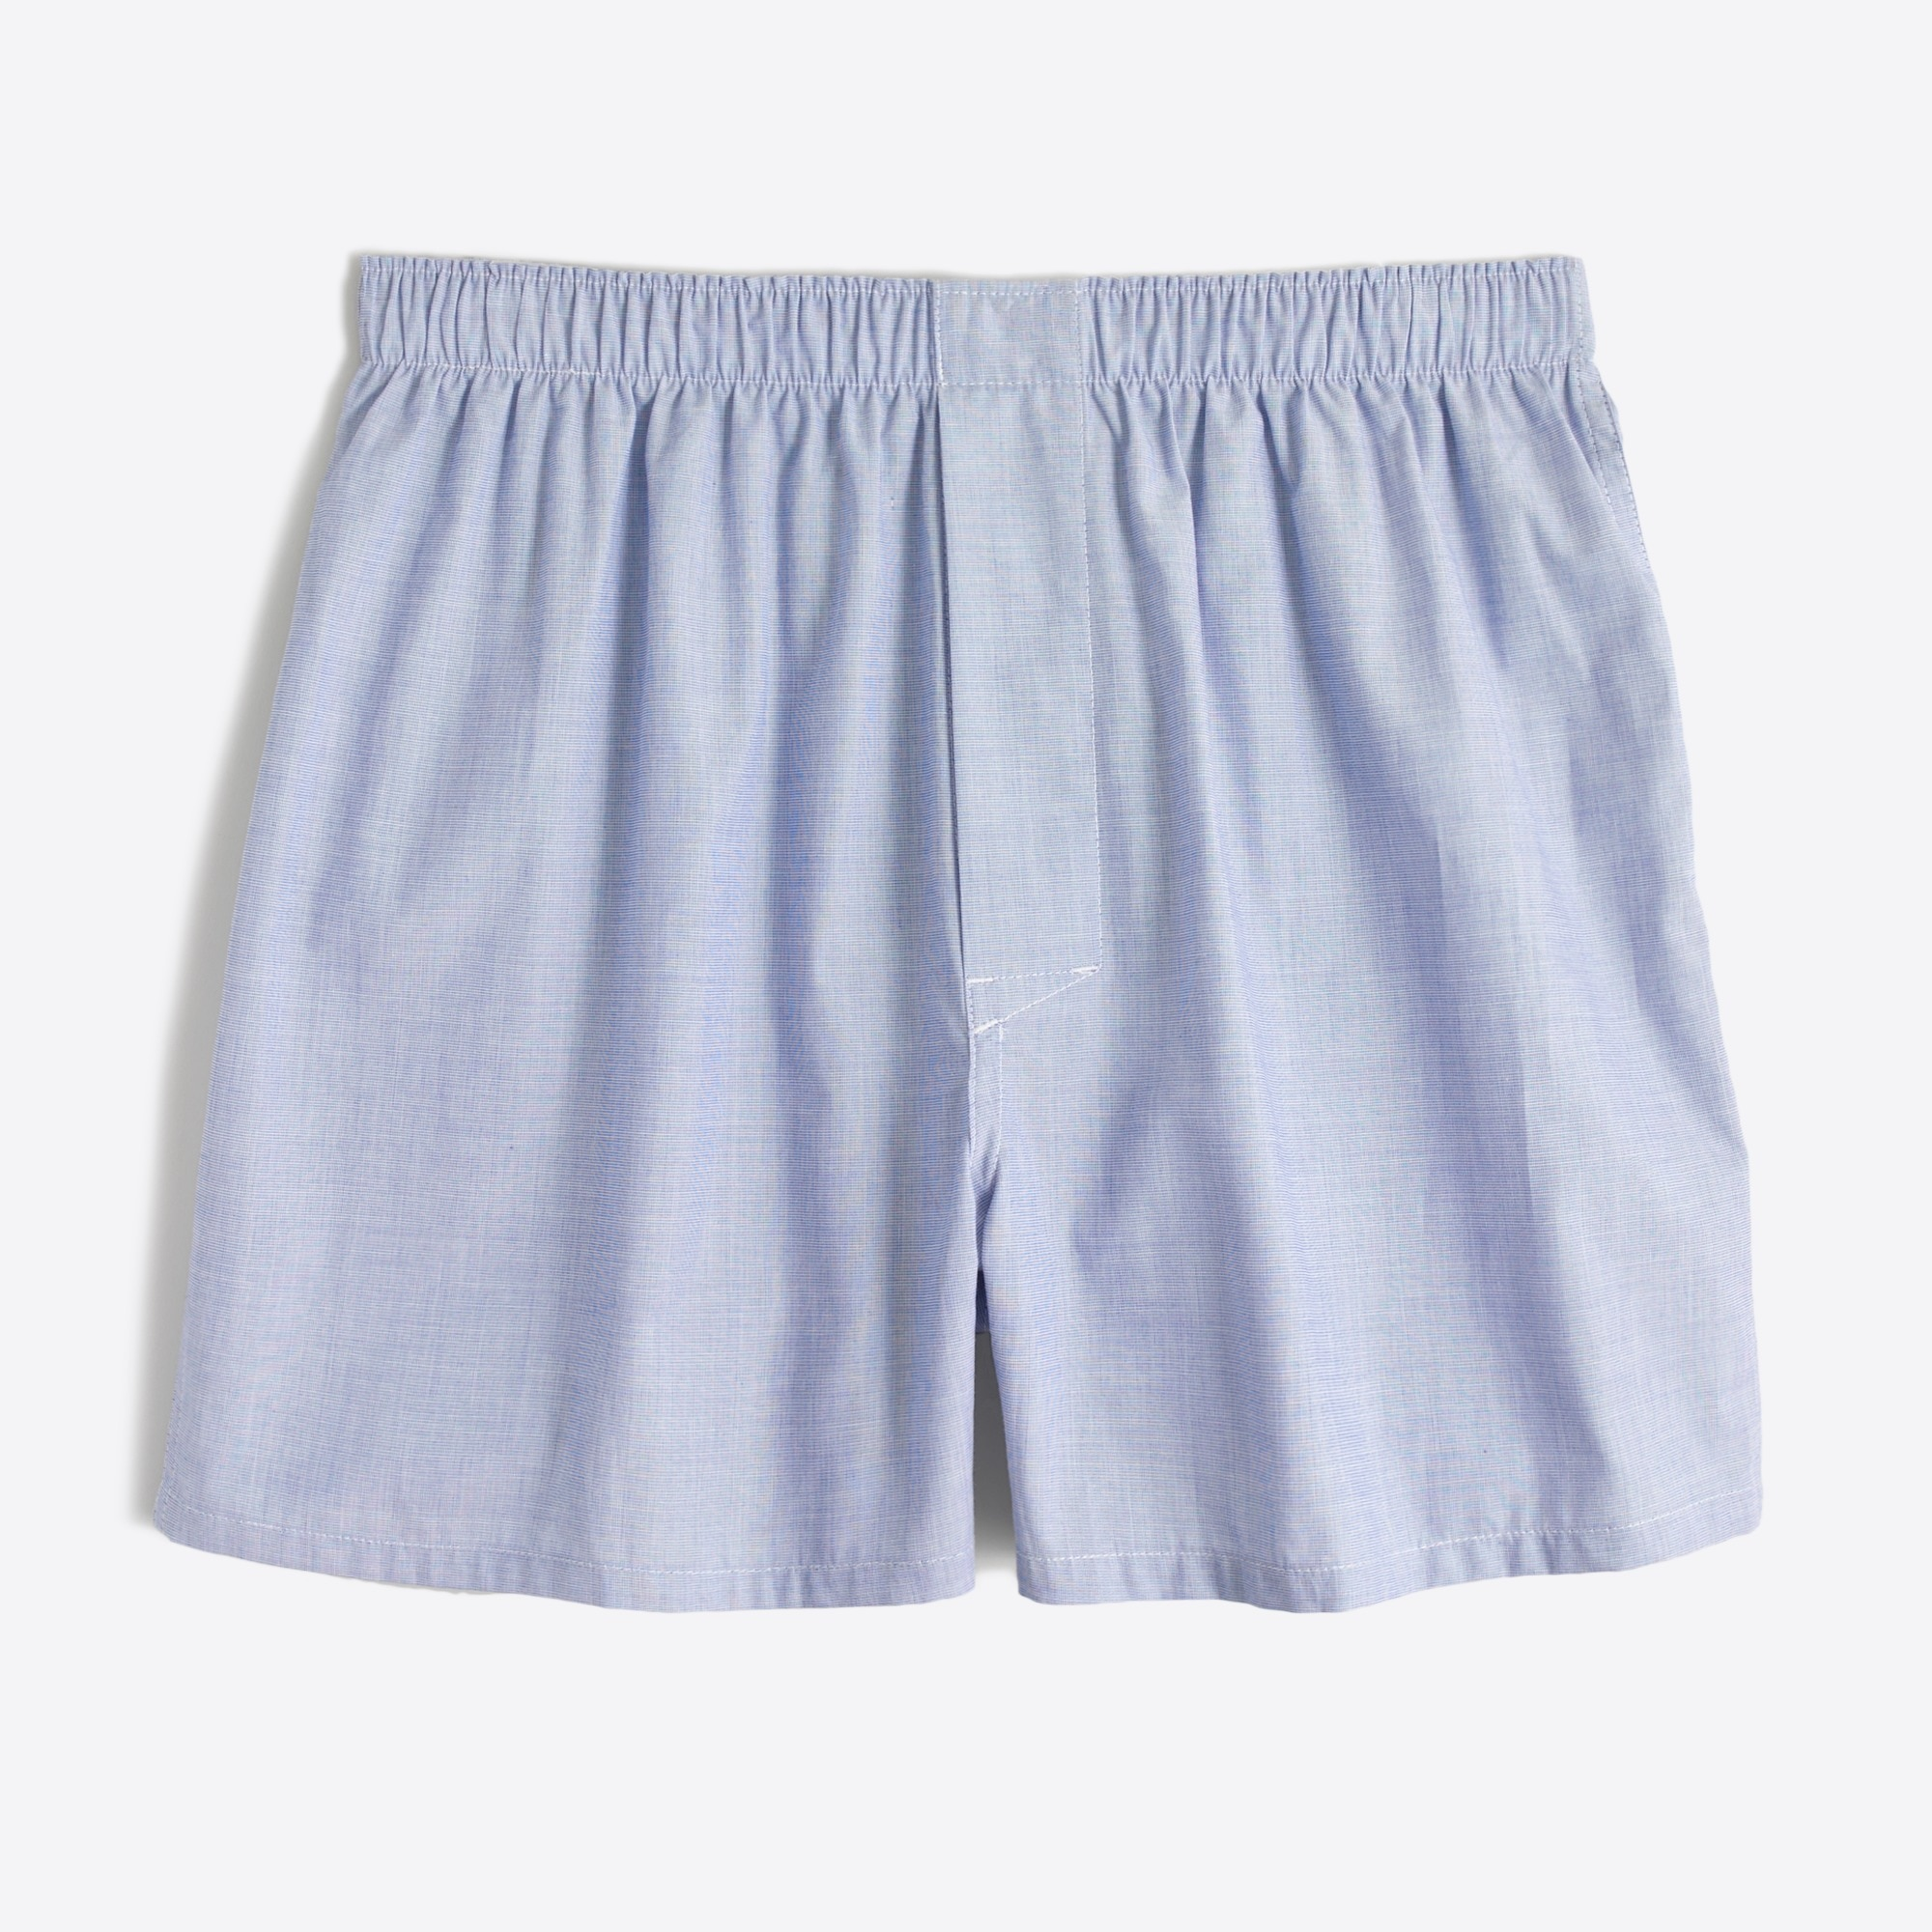 j.crew mercantile end on end boxers : factorymen j.crew mercantile boxers